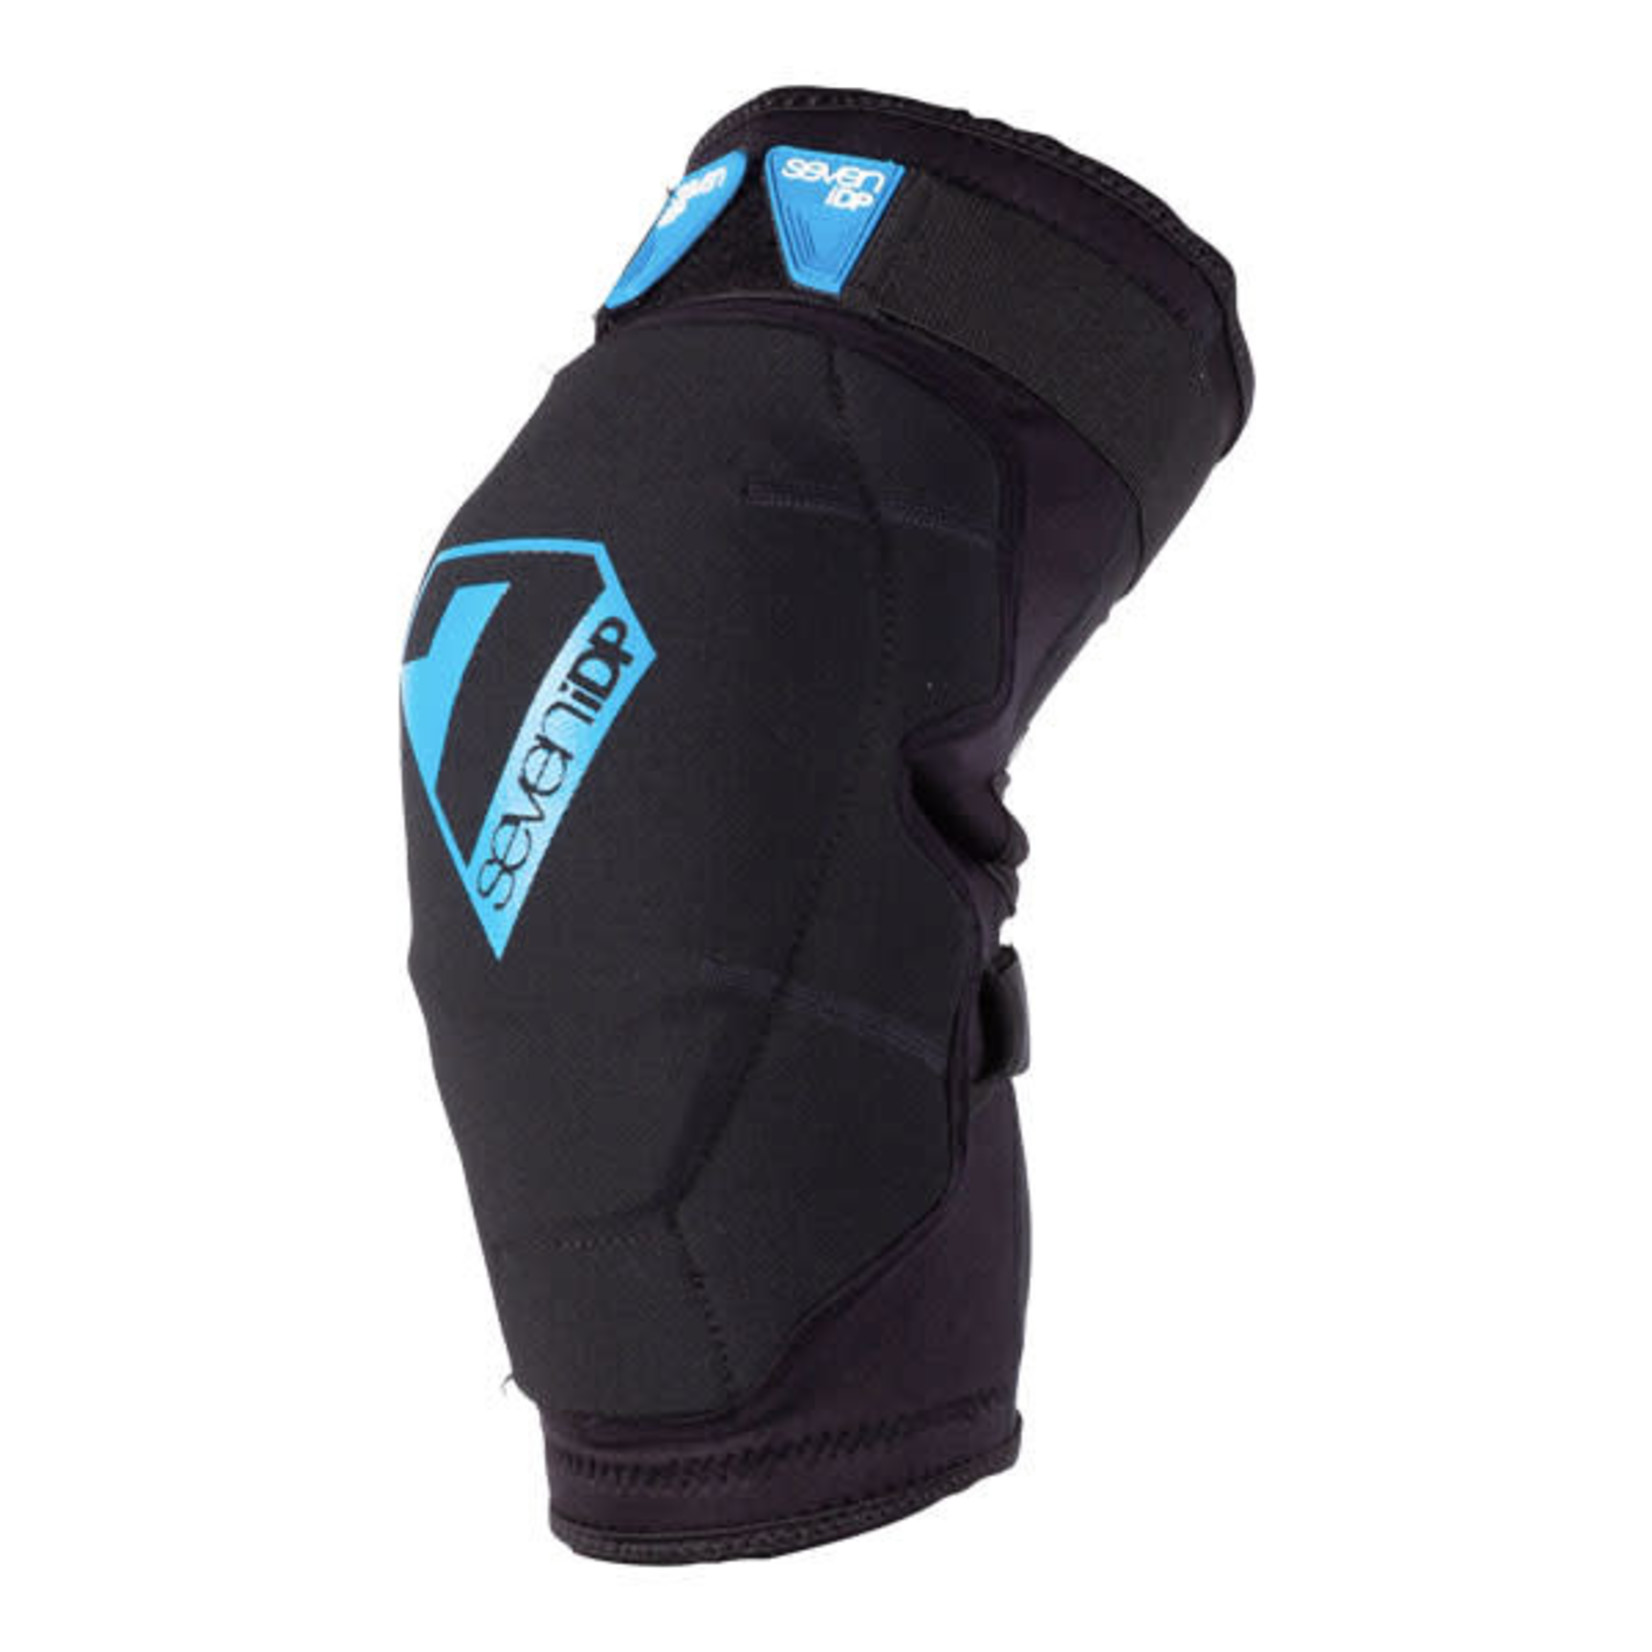 7 Protection 7 Protection - Elbow Pad - Flex